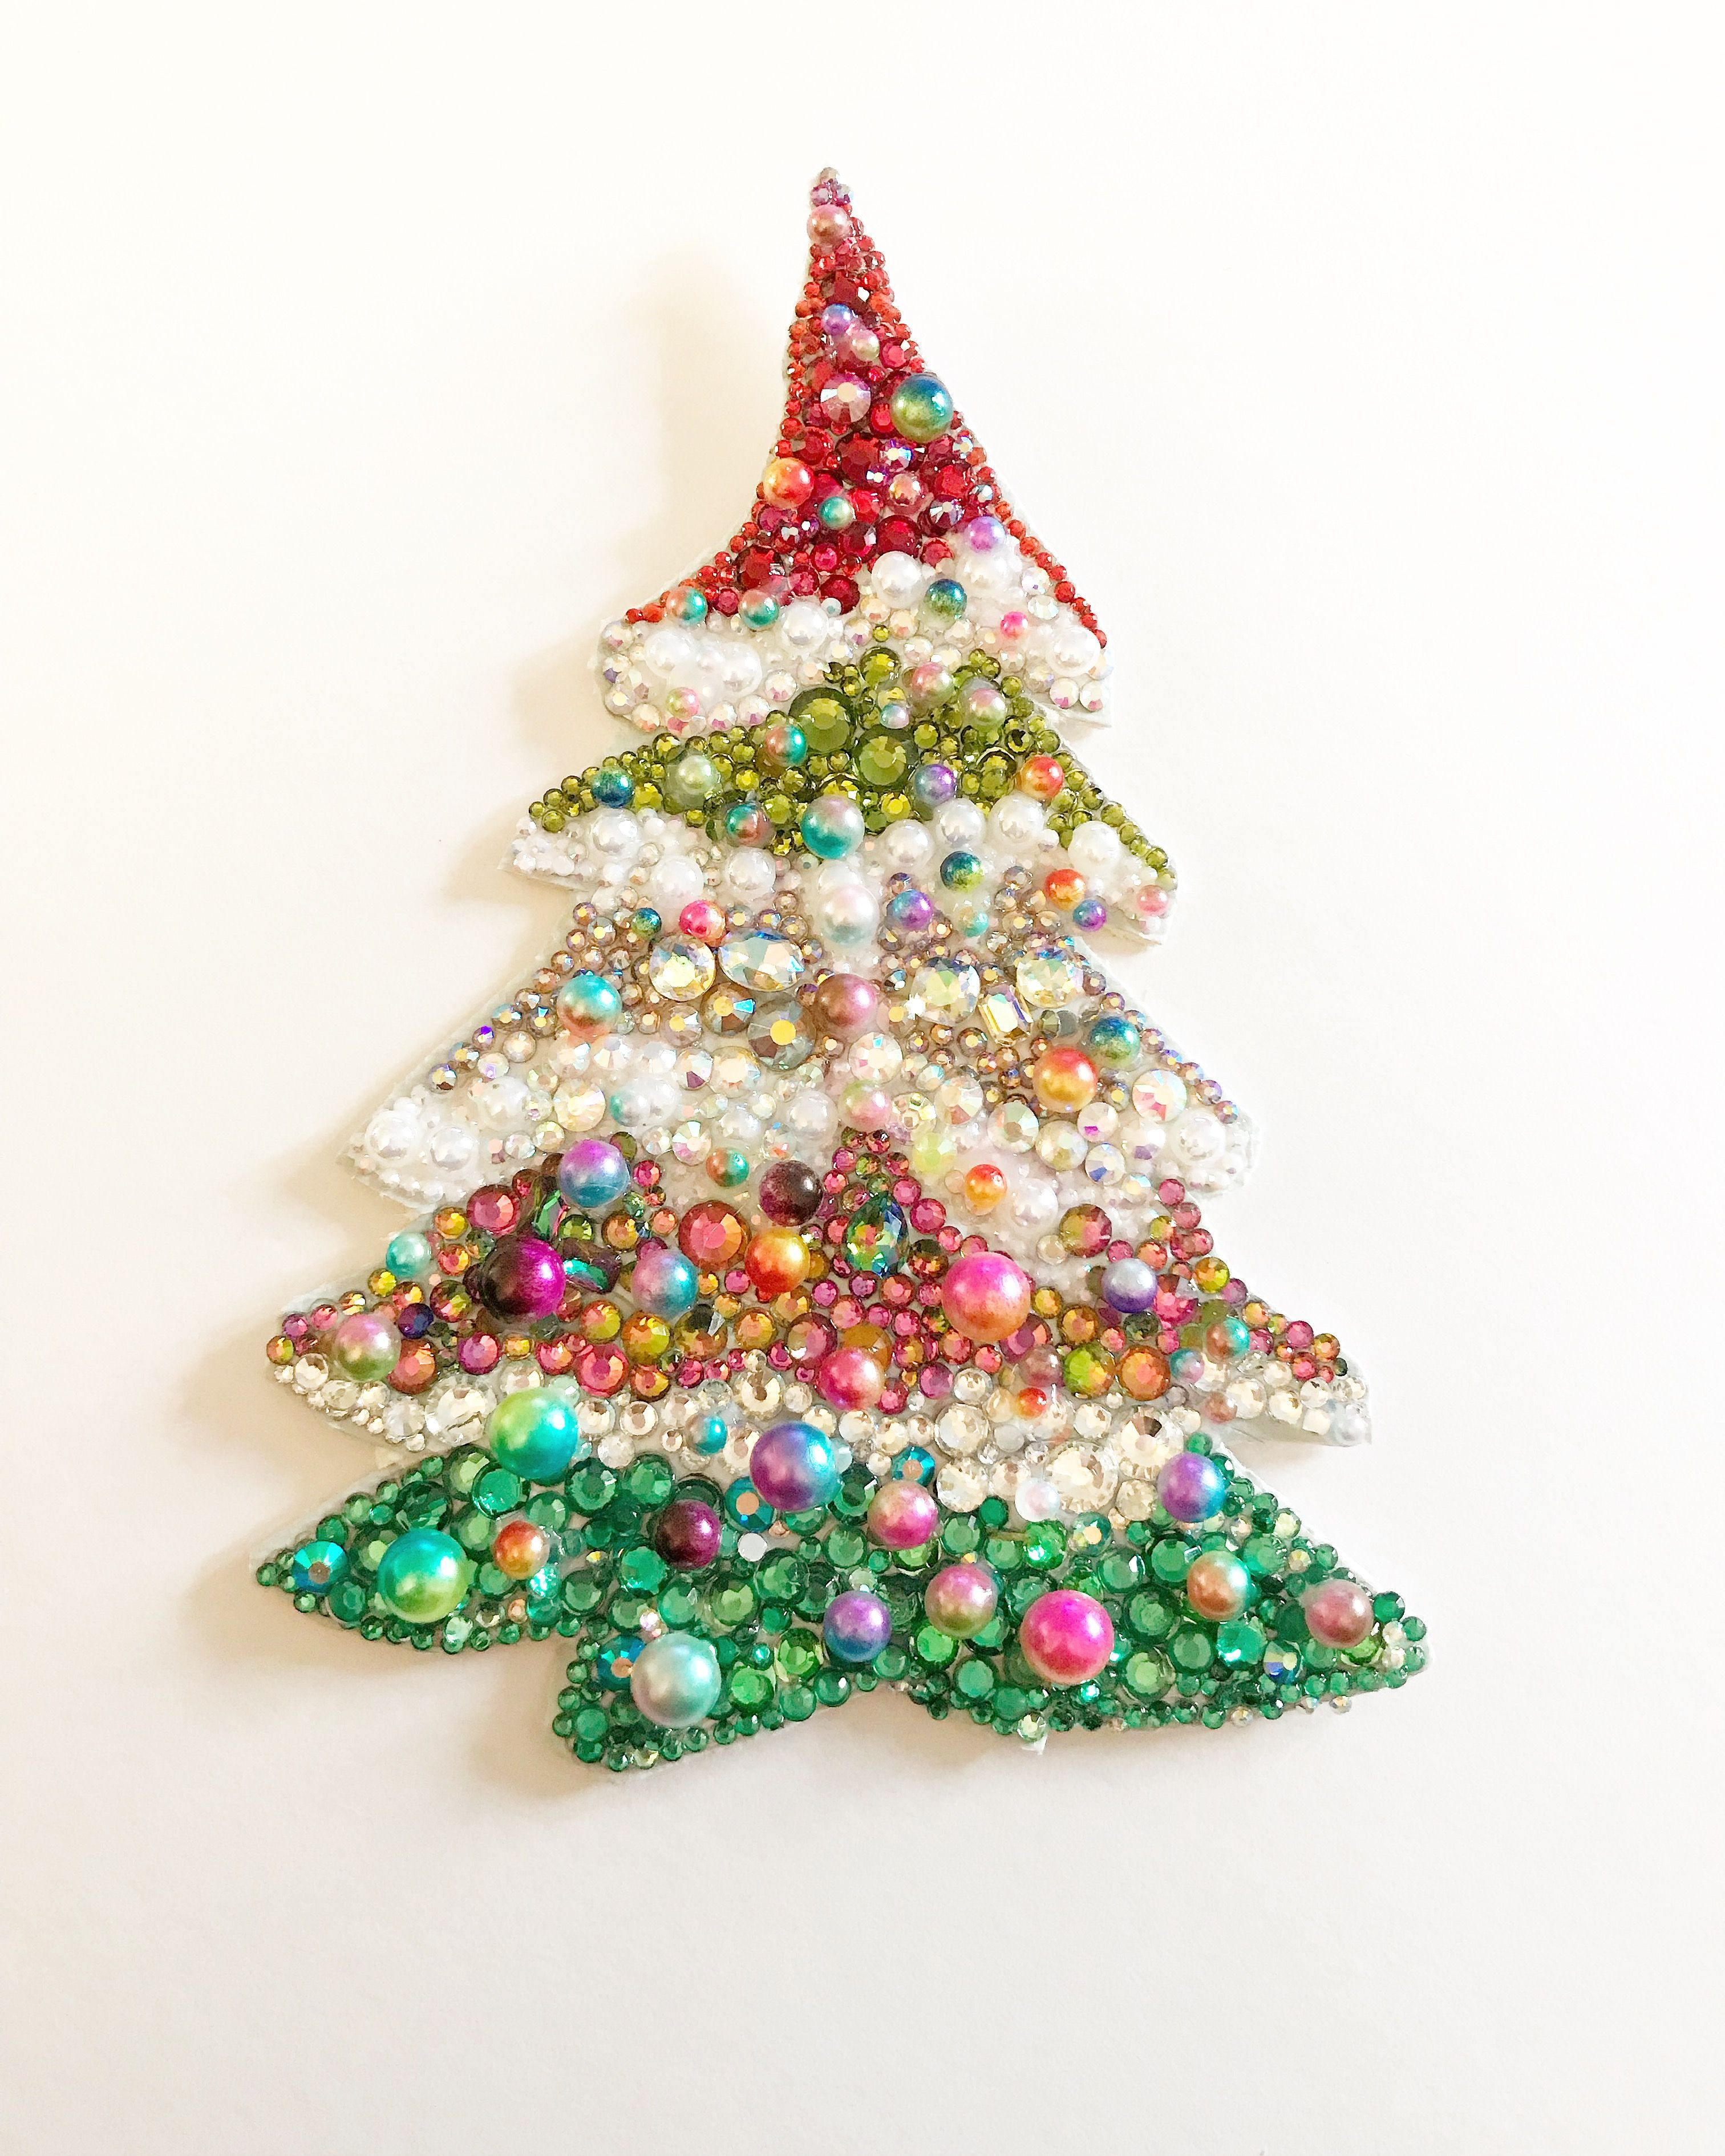 Sparkly Button Art Christmas Tree To Order Please See Always Sparkle Gifts On Etsy Or Facebook Button Crafts Christmas Crafts Jeweled Christmas Trees